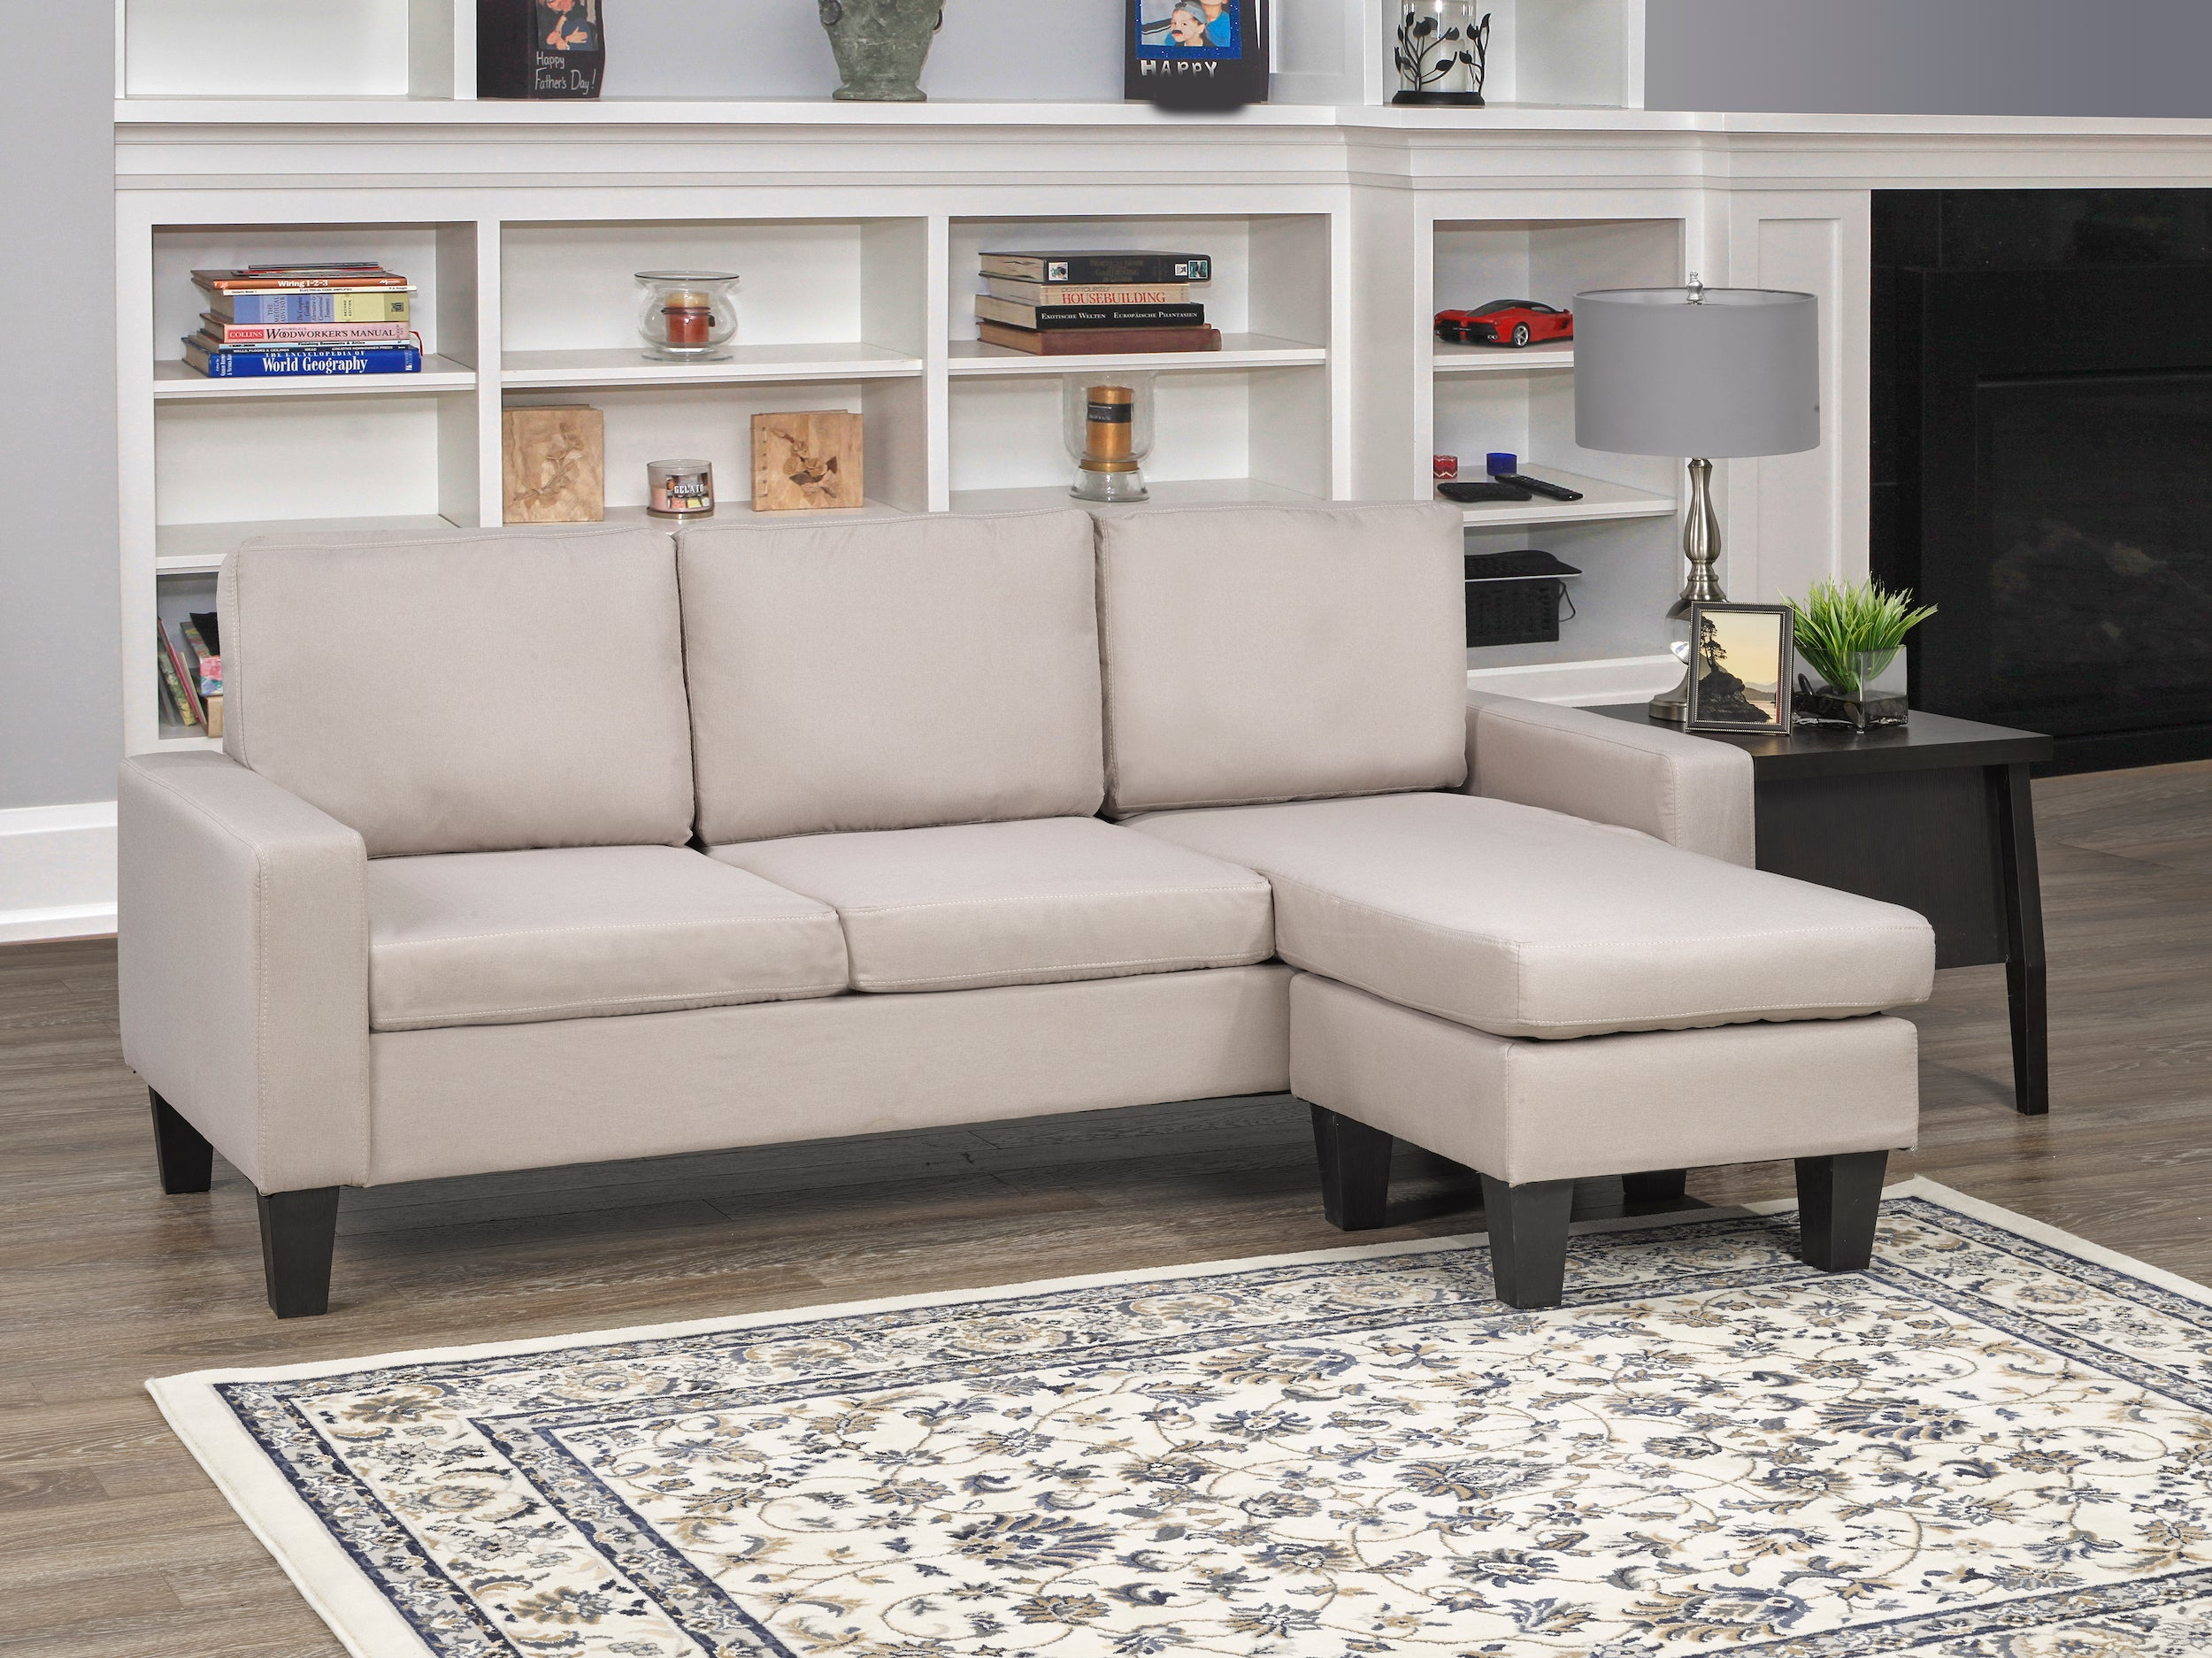 Anton LHF/RHF Sectional - Beige | Candace and Basil Furniture